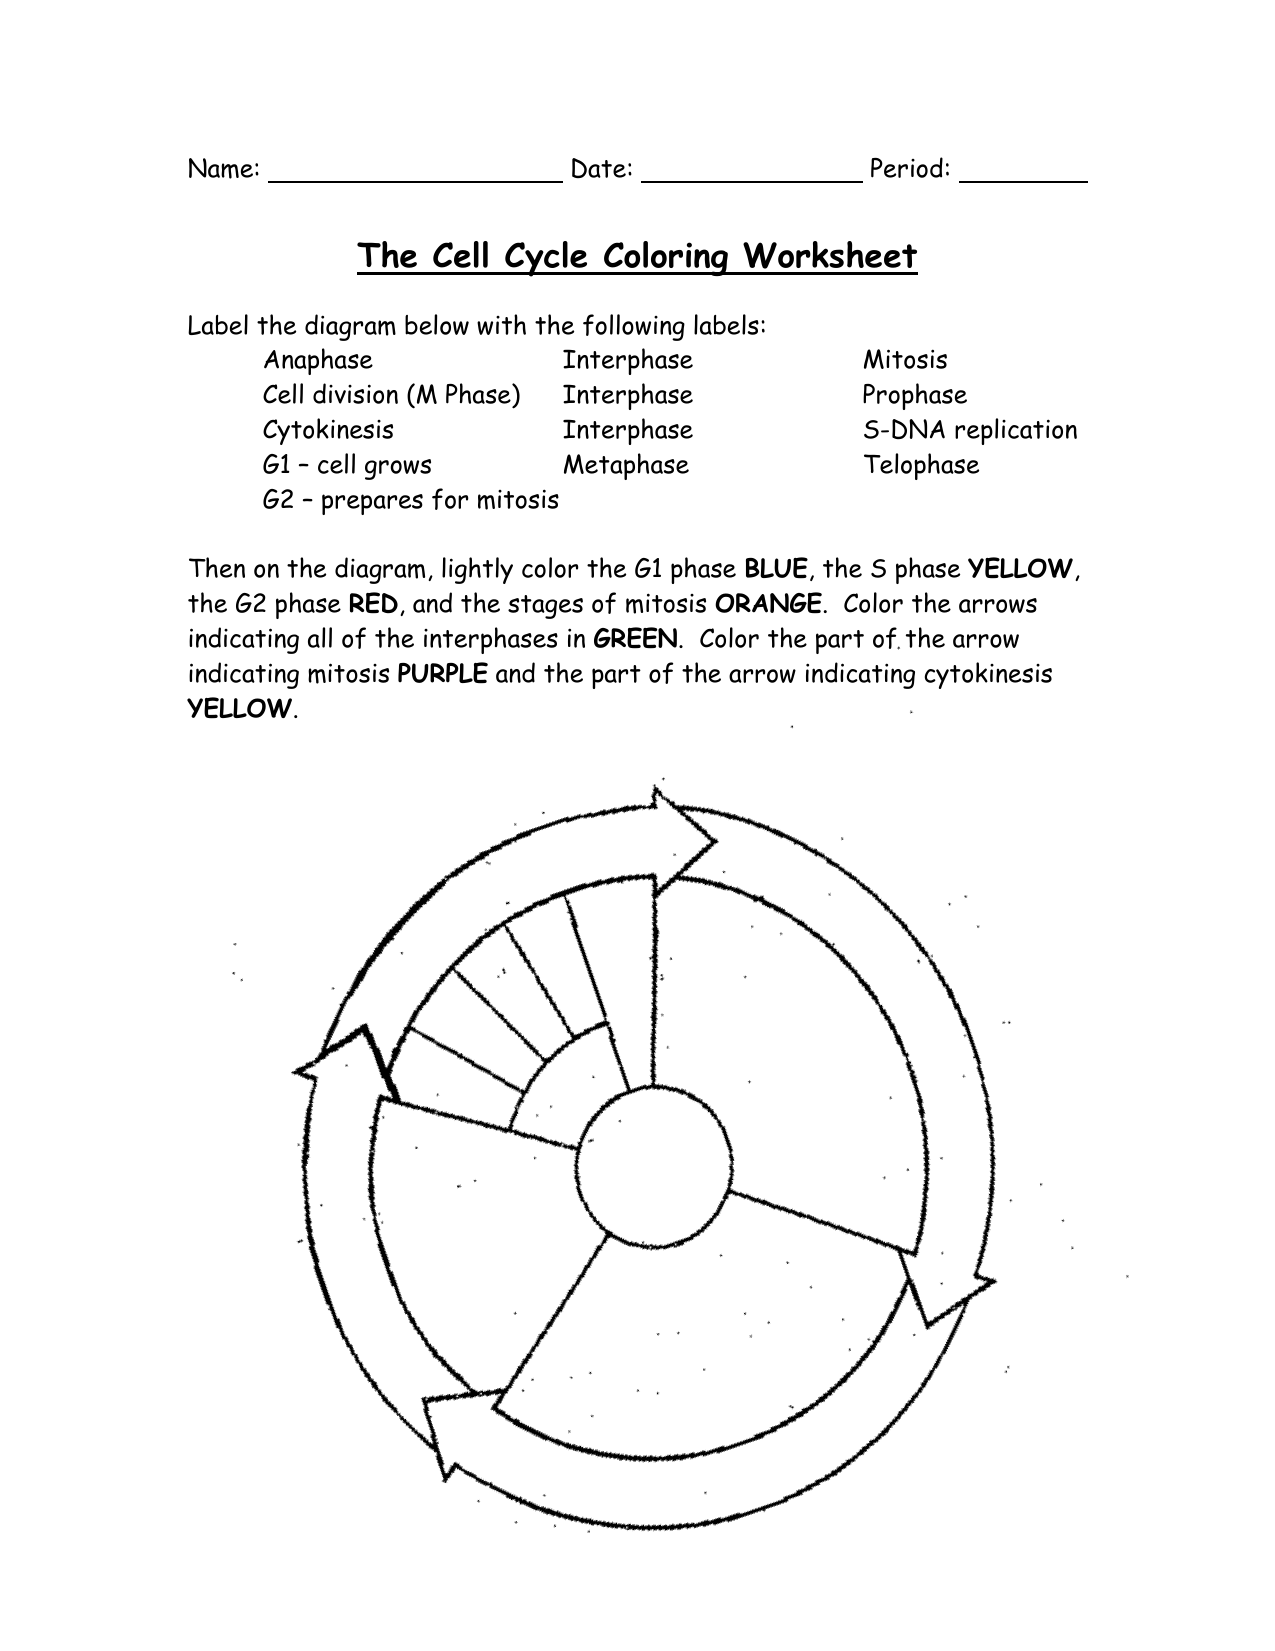 The Cell Cycle Coloring Worksheet Answers Free Printable